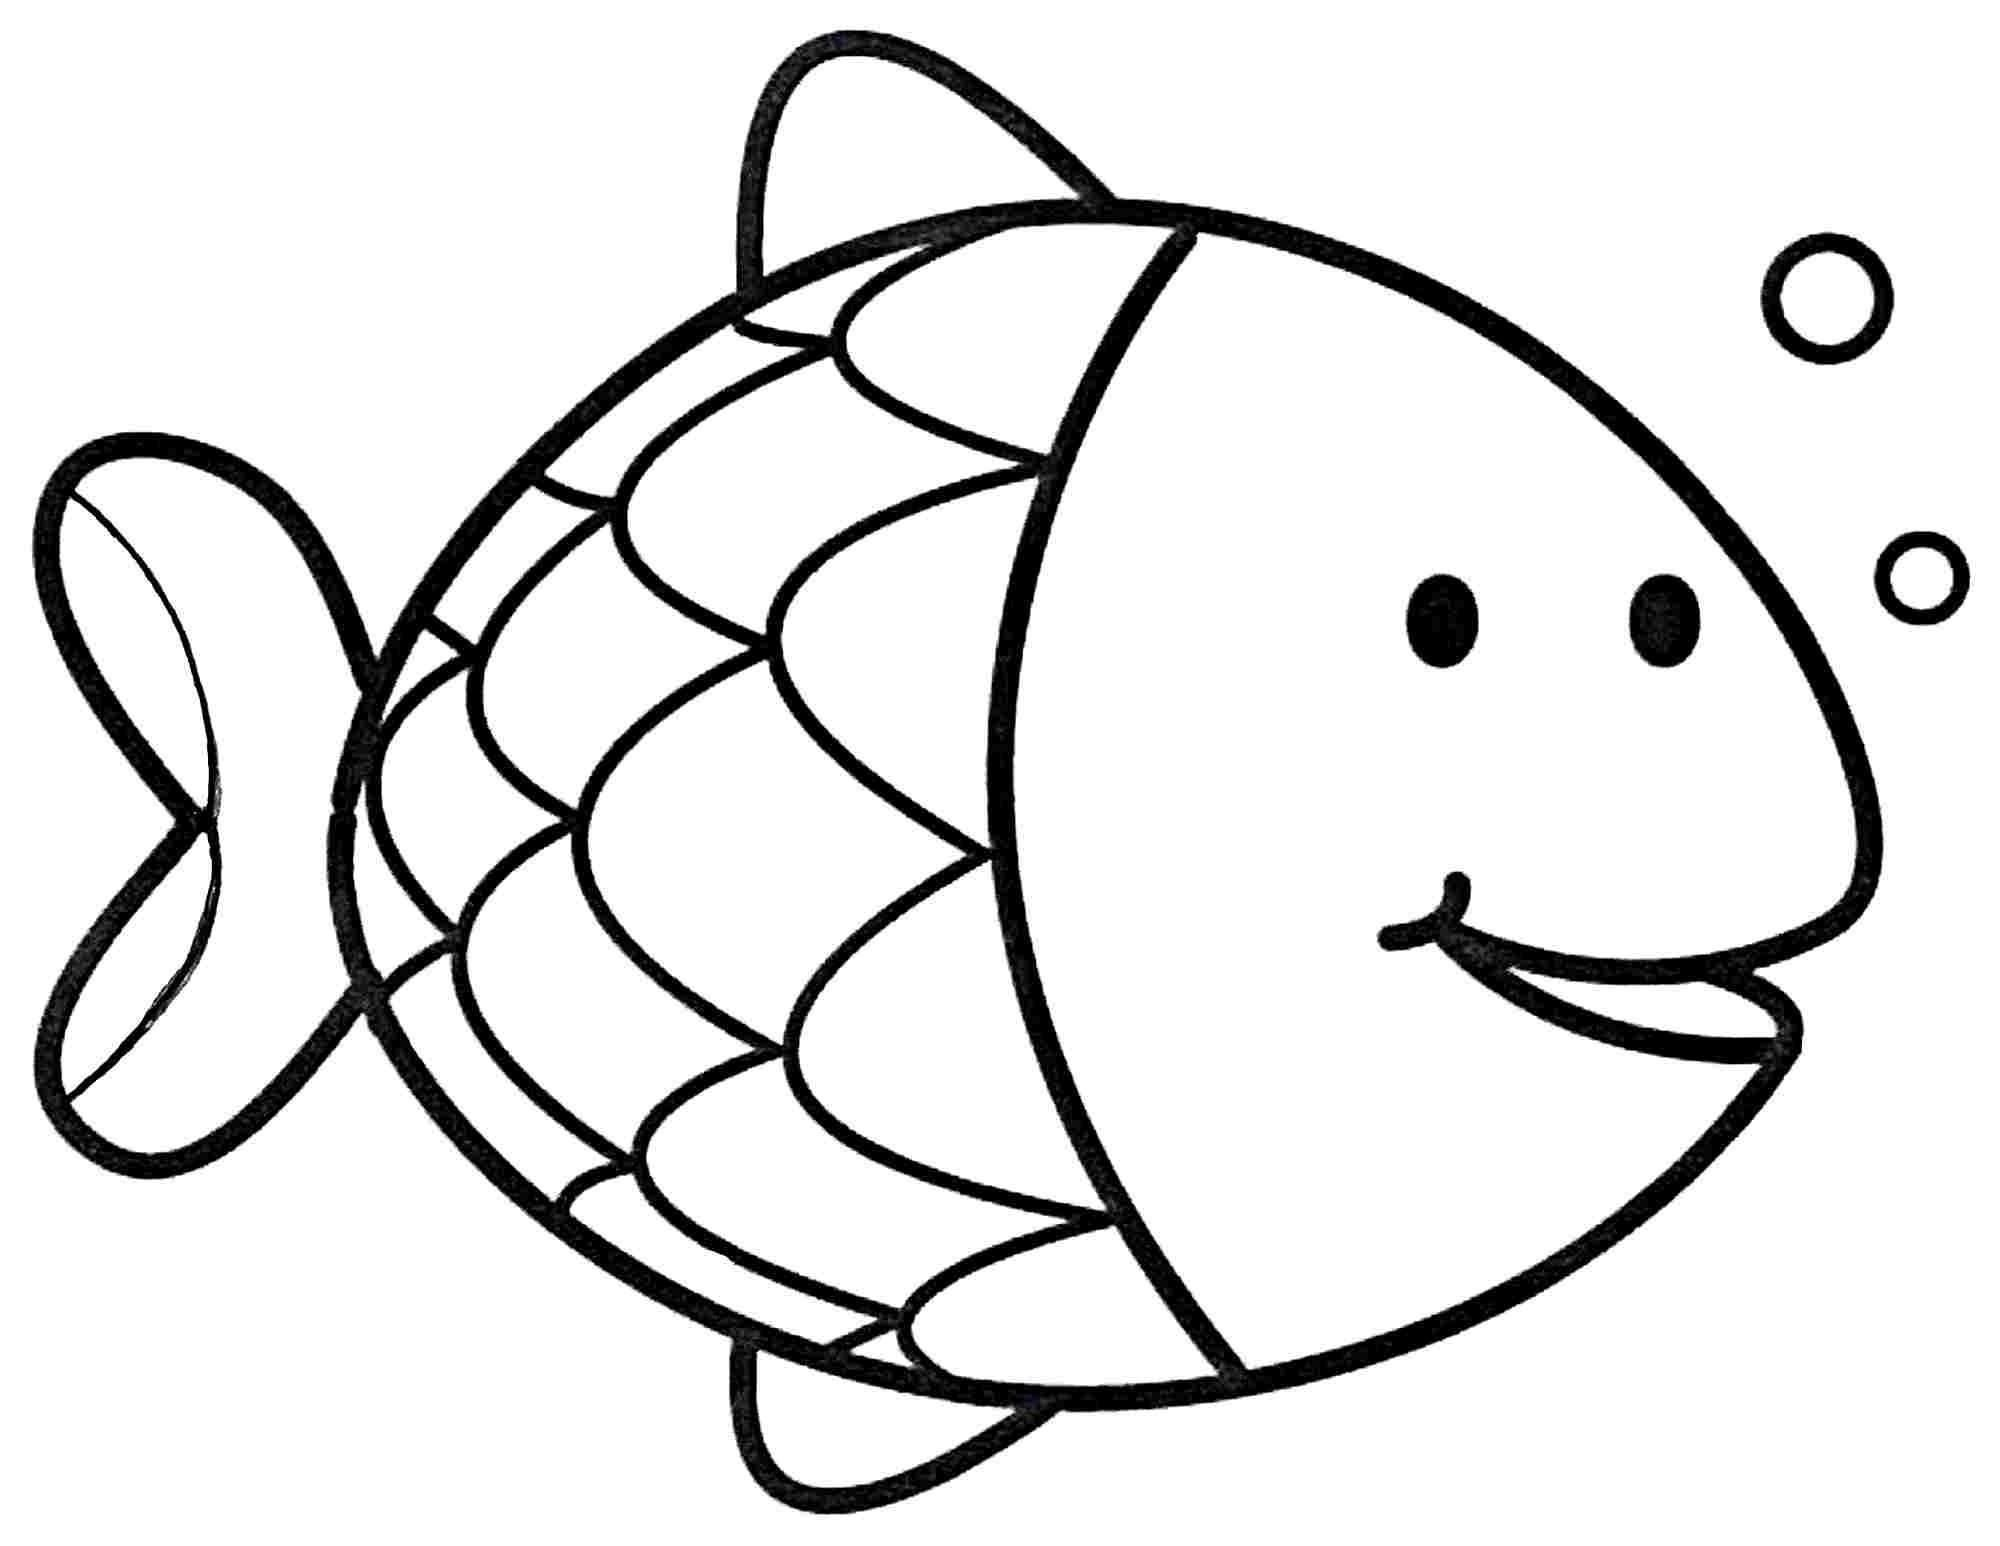 10 Printable Colouring Pages For Boys Kids Printable Coloring Pages Easy Coloring Pages Coloring Sheets For Kids